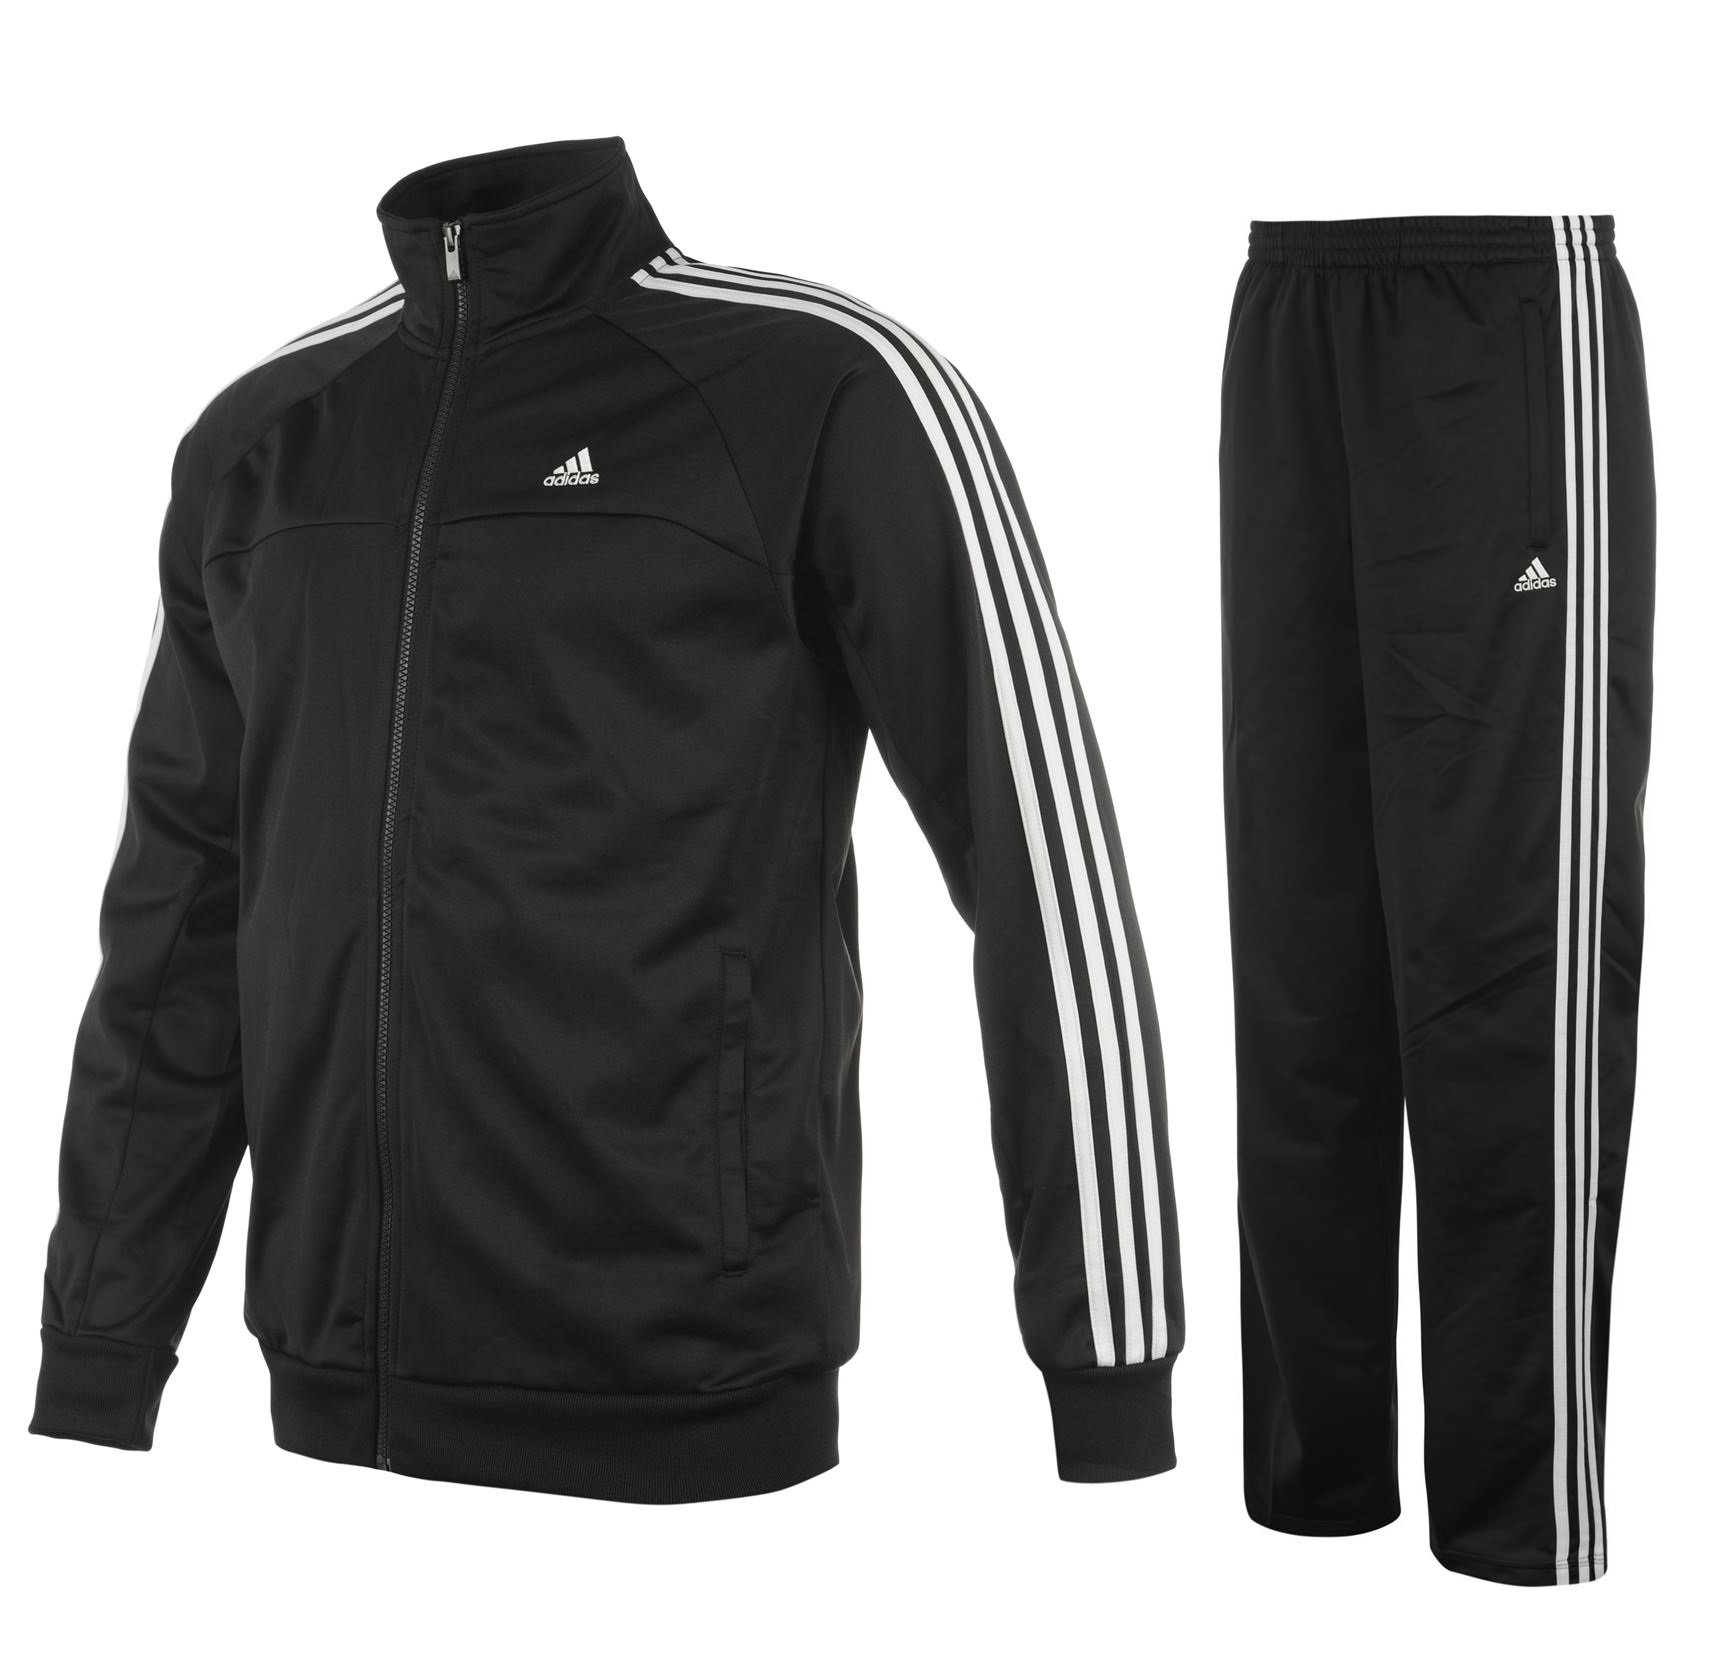 adidas 3 streifen herren trainingsanzug essentials climalite schwarz neu s 4xl ebay. Black Bedroom Furniture Sets. Home Design Ideas